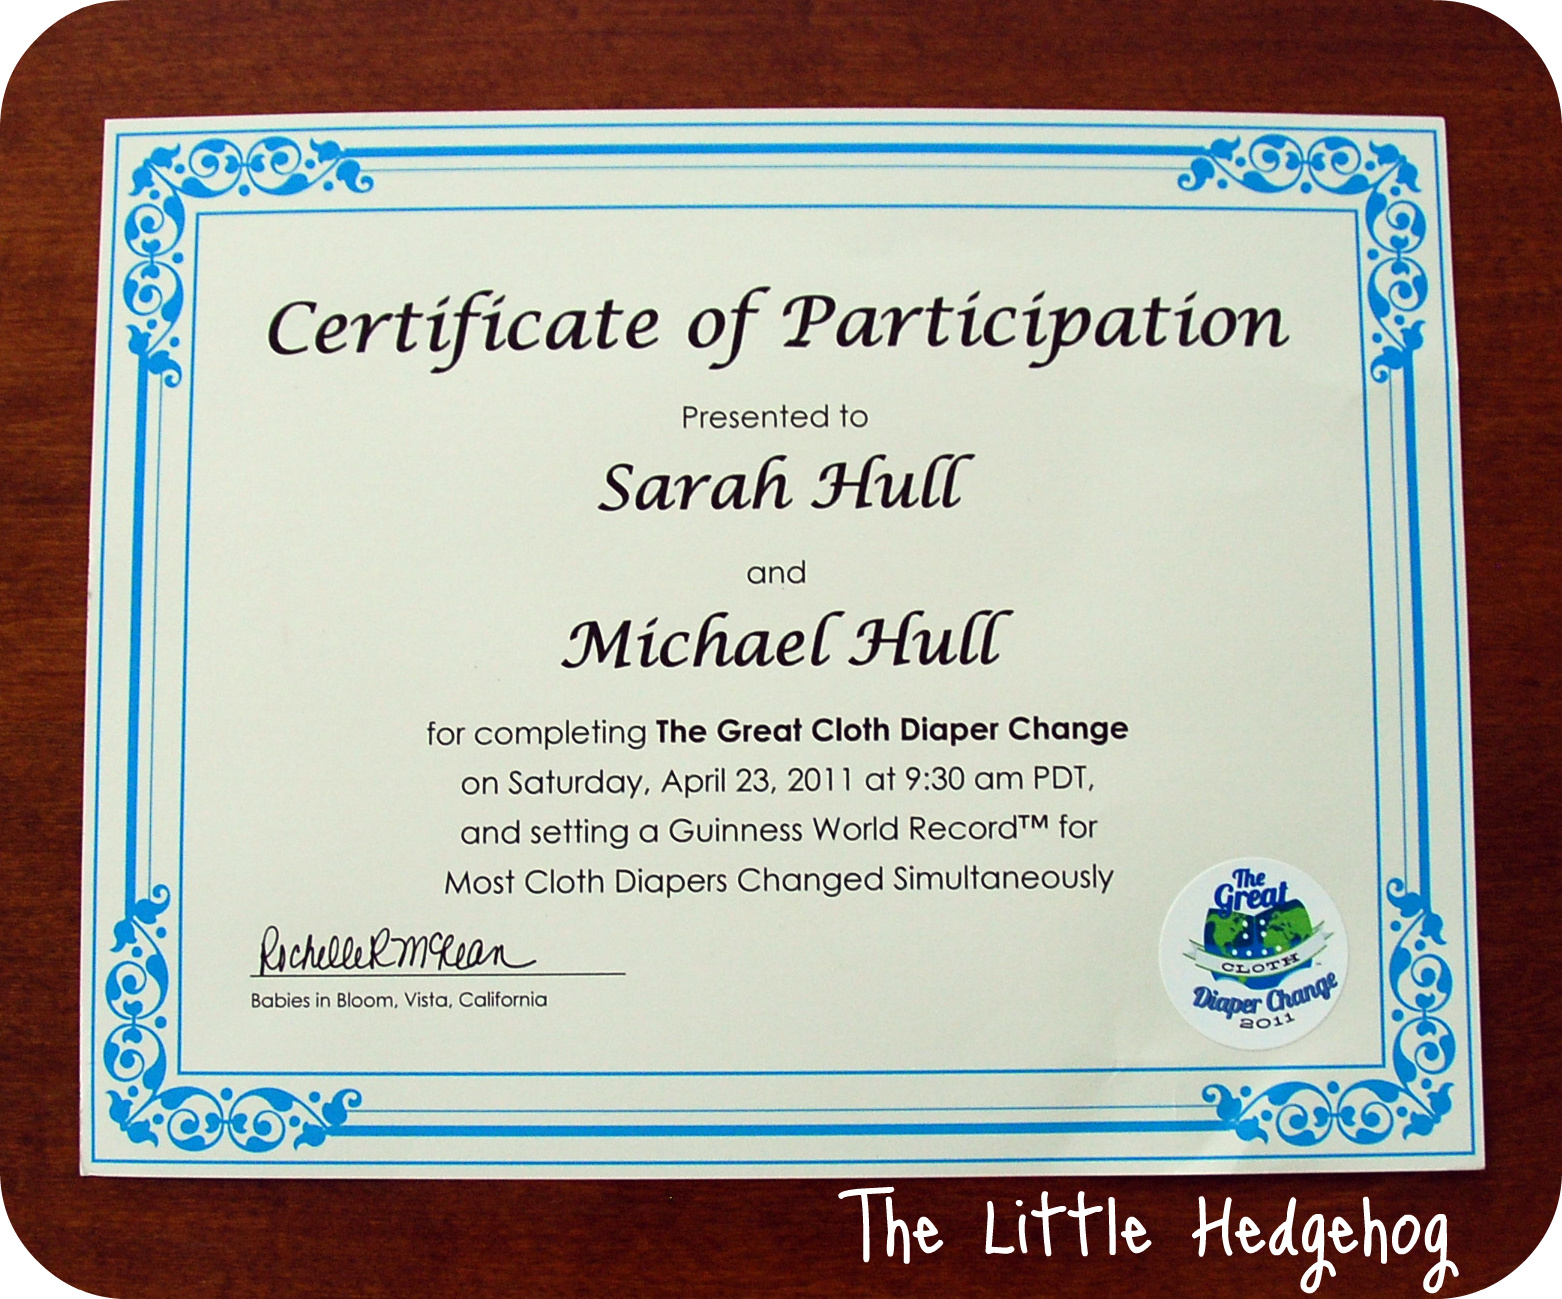 ... Sample Certificate Of Participation The Little Hedgehog The Great Cloth  Diaper Change ...